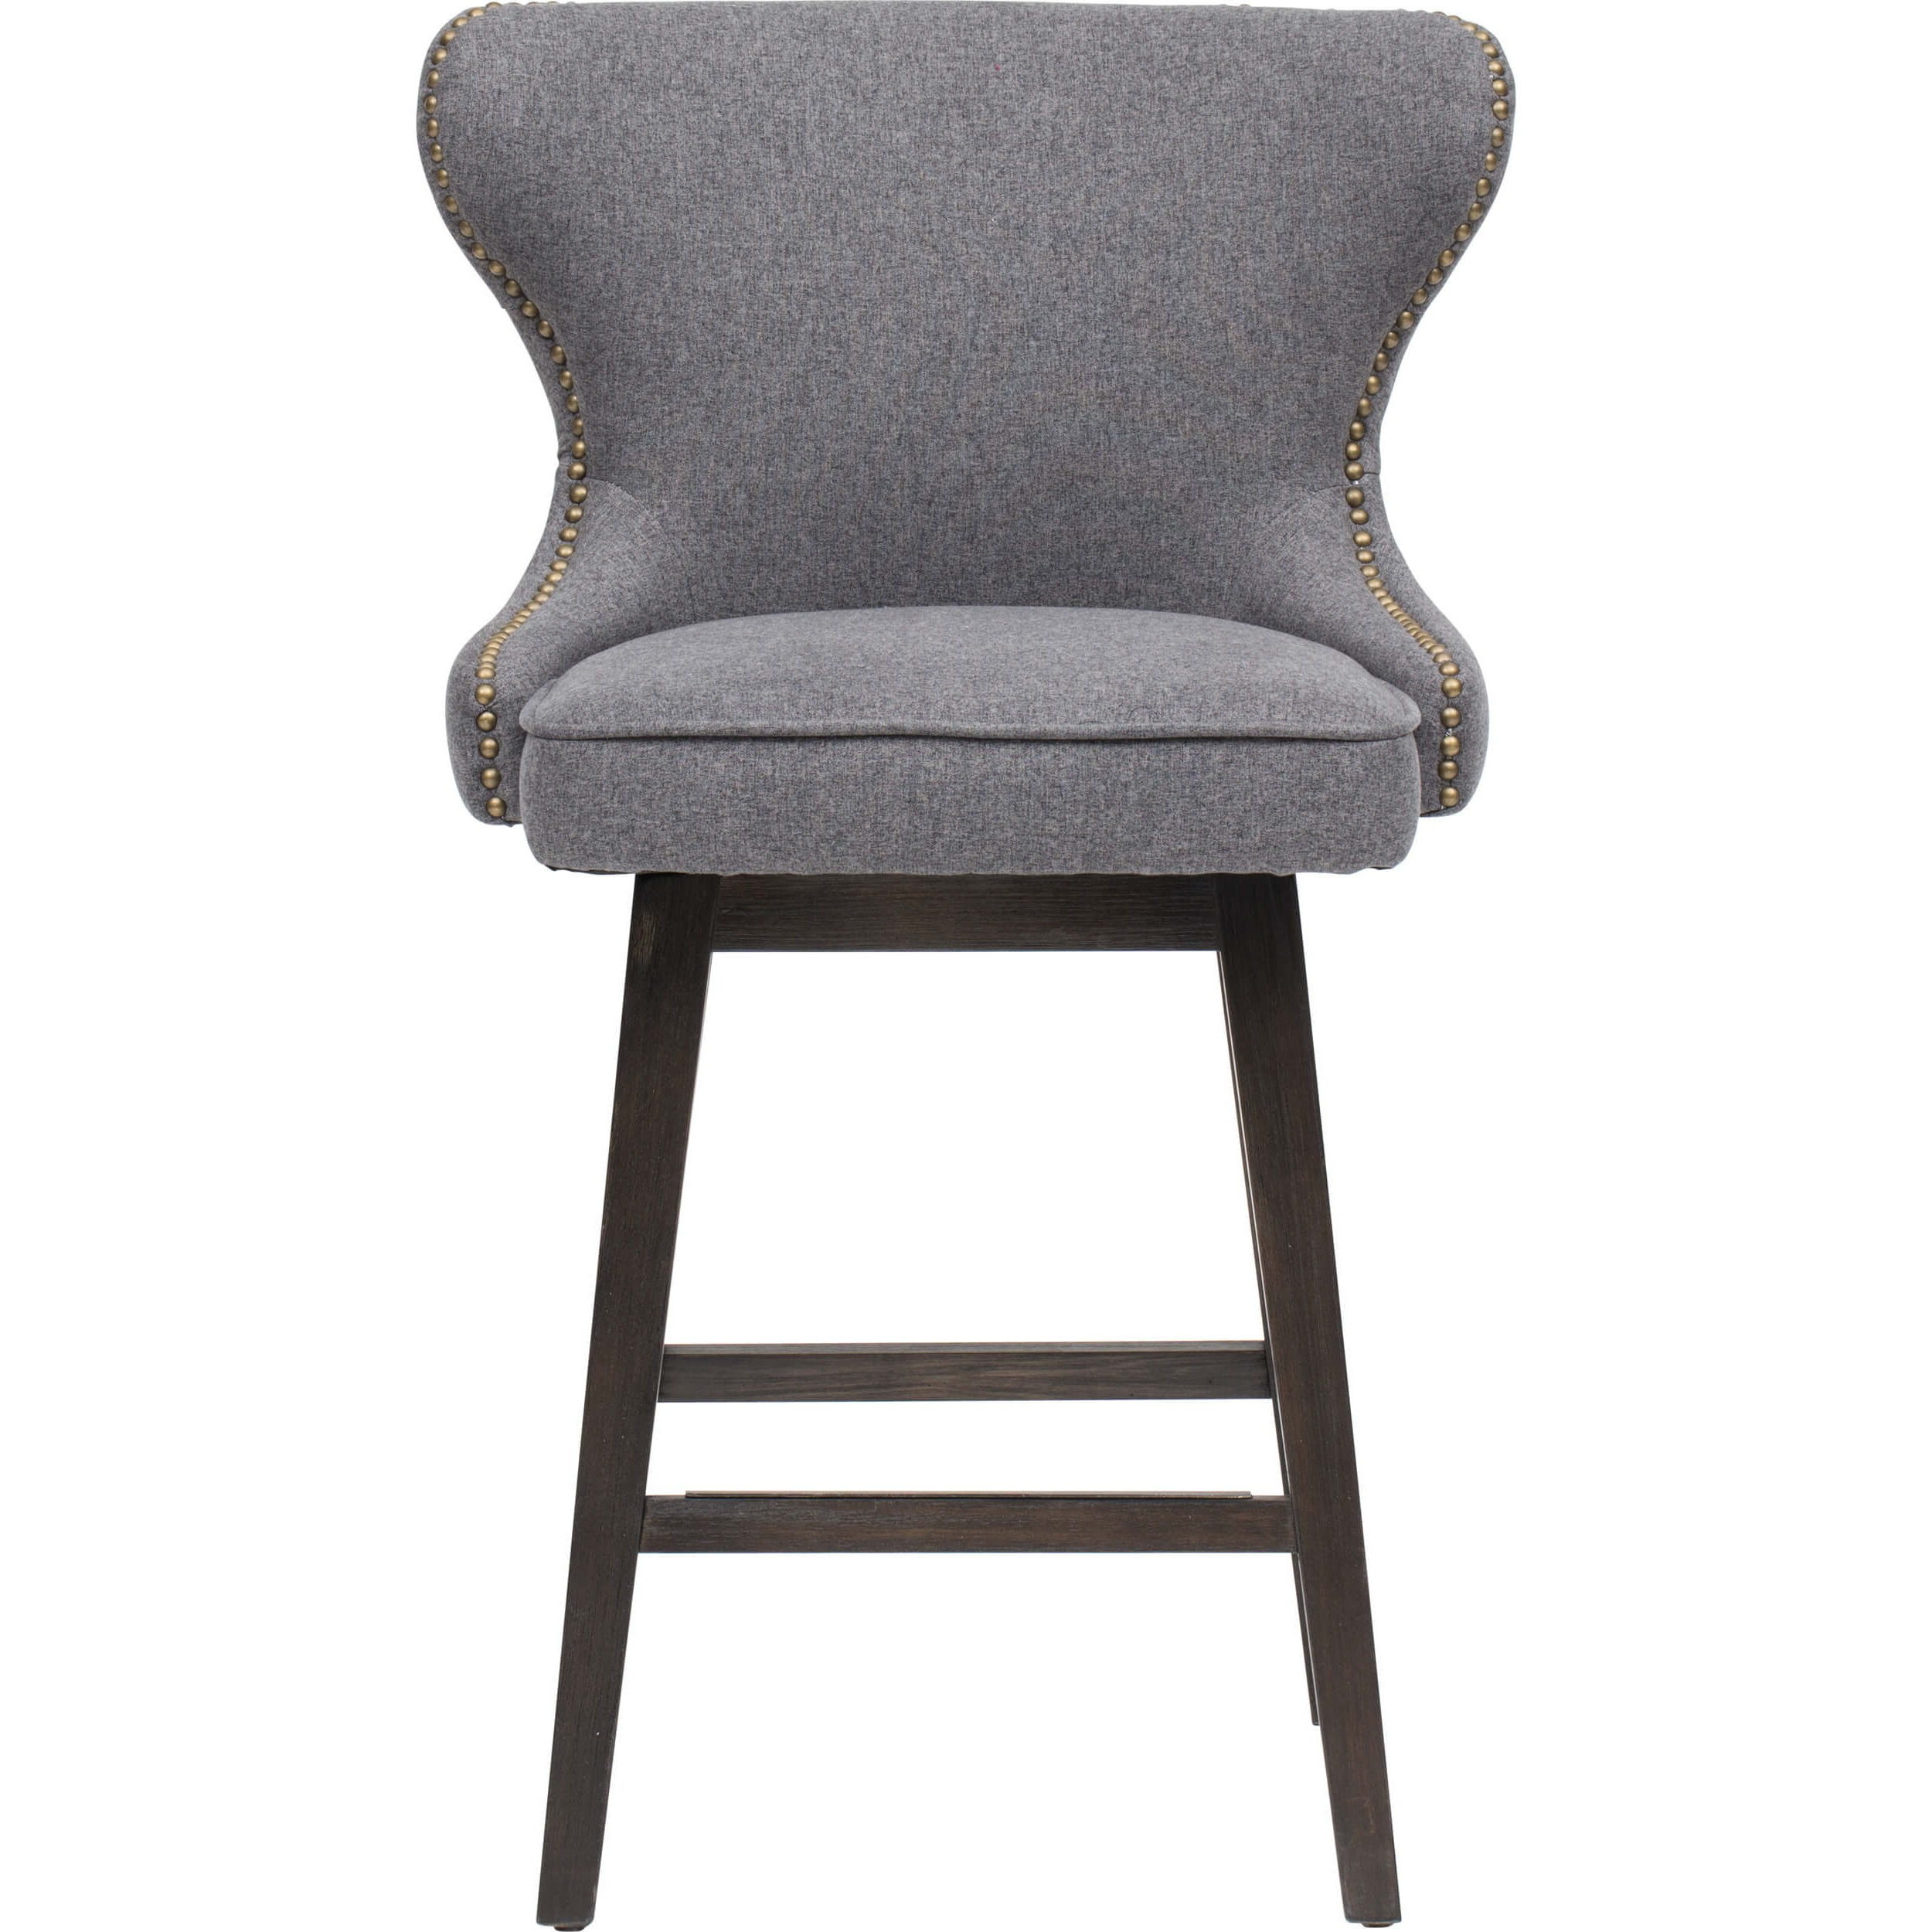 Dark Grey Swivel Chairs Intended For Most Recent Ariana Swivel Counter Stool, Dark Grey – Dining Stools – Dining (View 10 of 20)